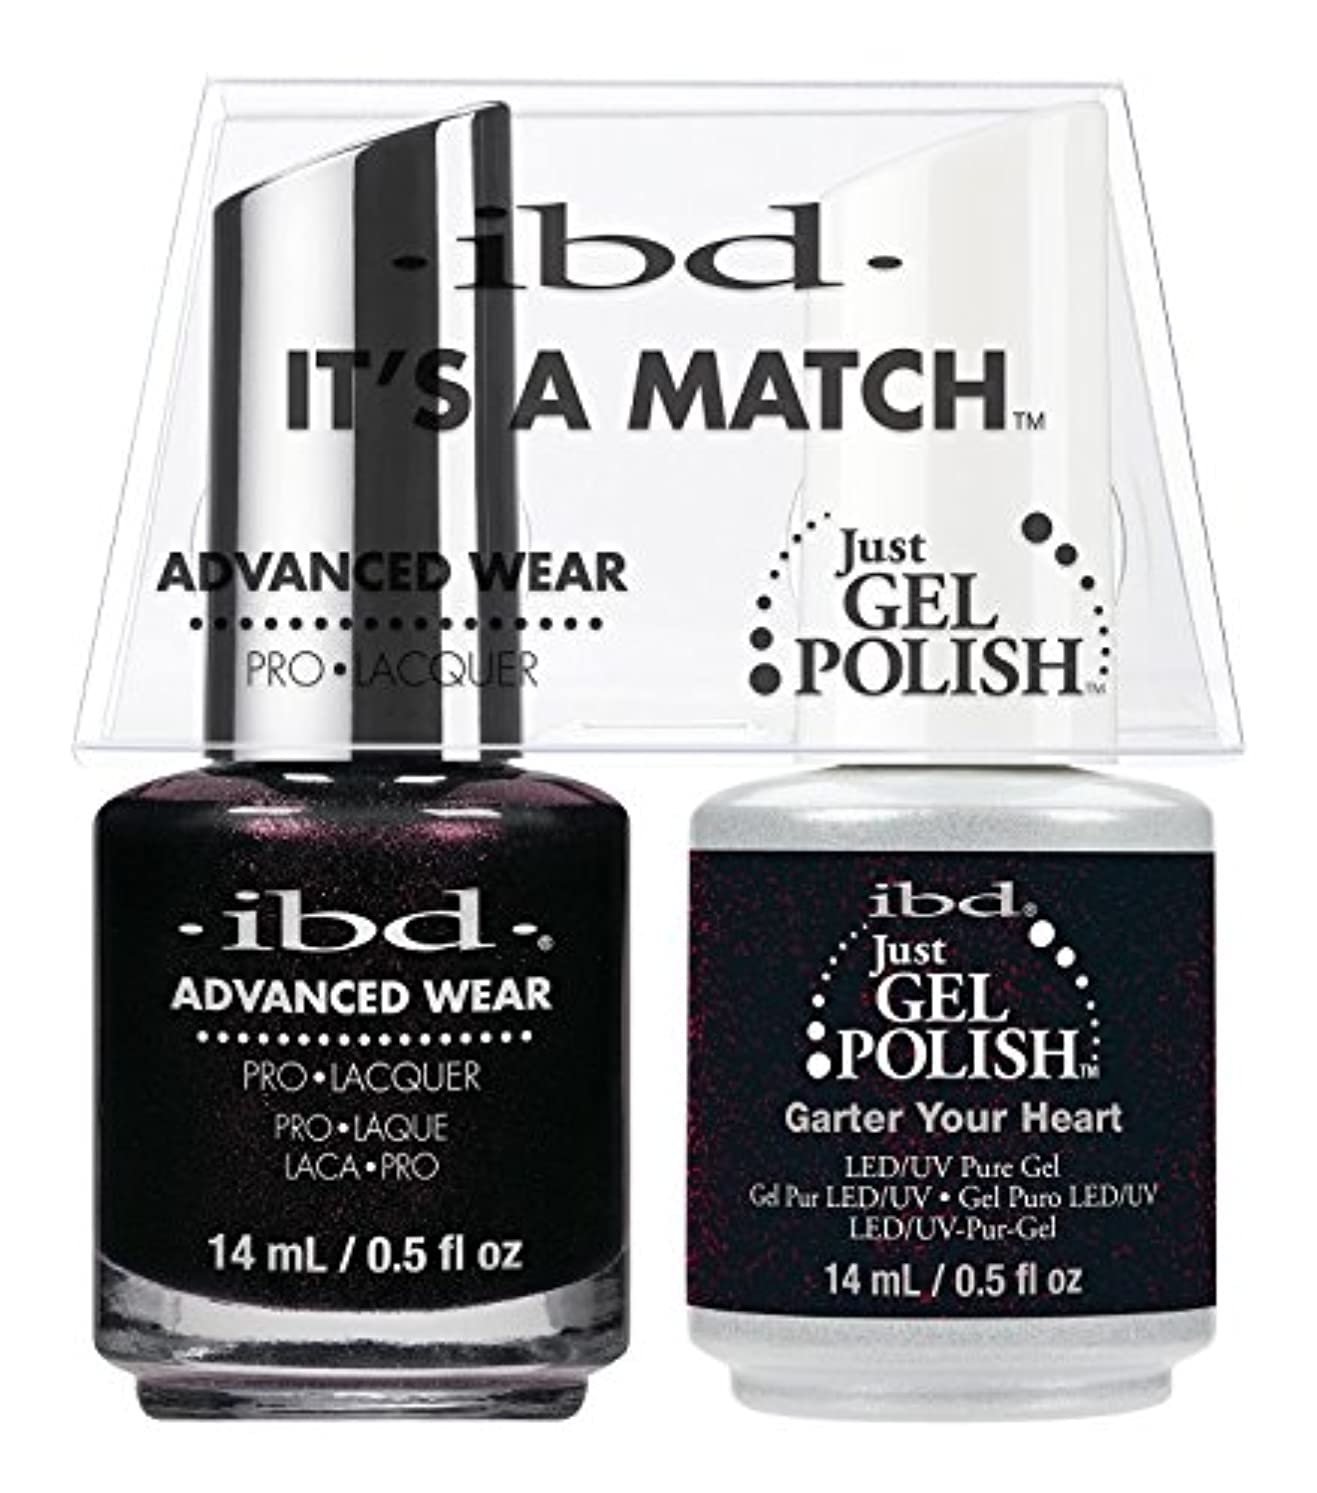 クレアスライス宙返りibd - It's A Match -Duo Pack- Garter Your Heart - 14 mL / 0.5 oz Each